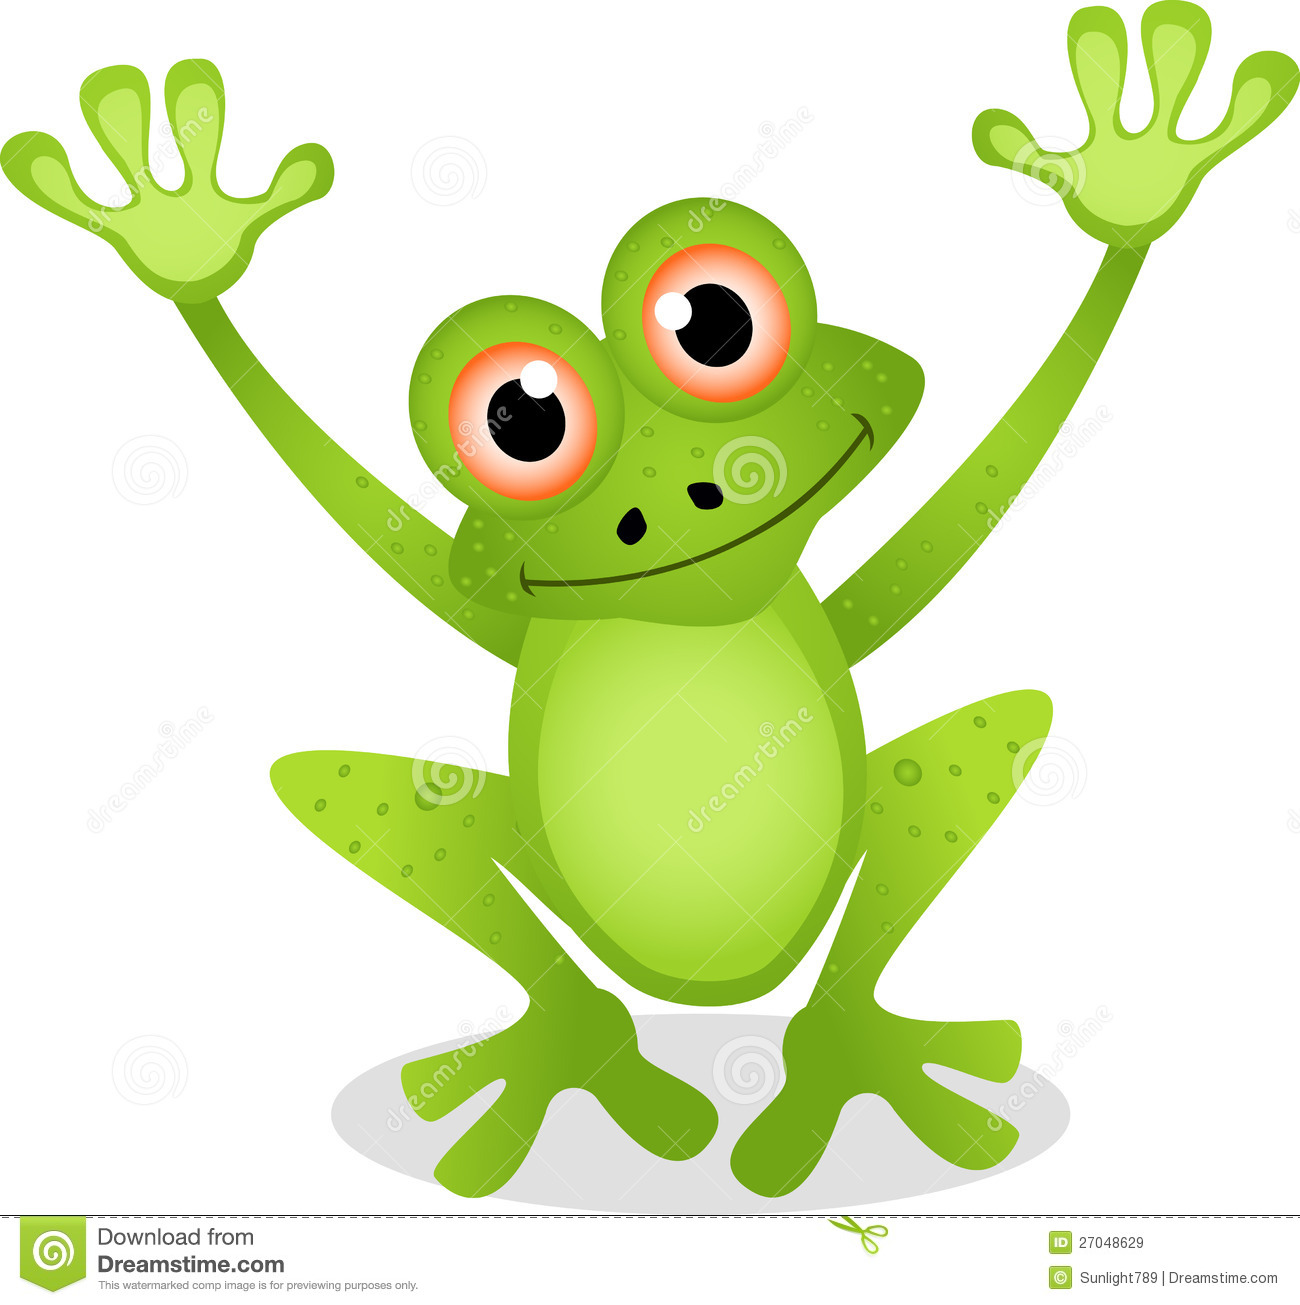 Funny frog cartoon stock illustration. Image of creature ...